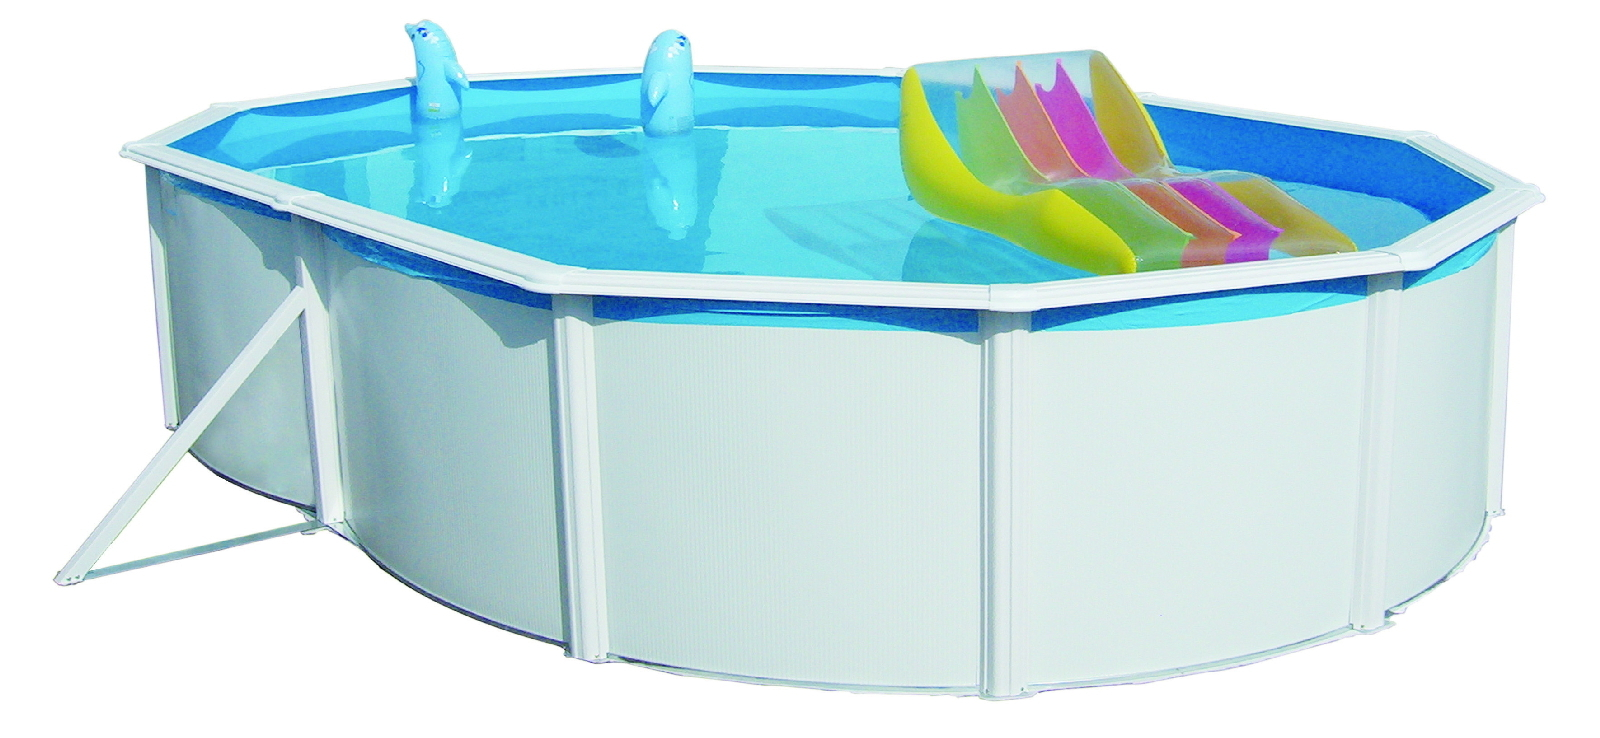 Stahlpool nuovodeluxe oval 550x366x120 bavchem for Stahl pool oval